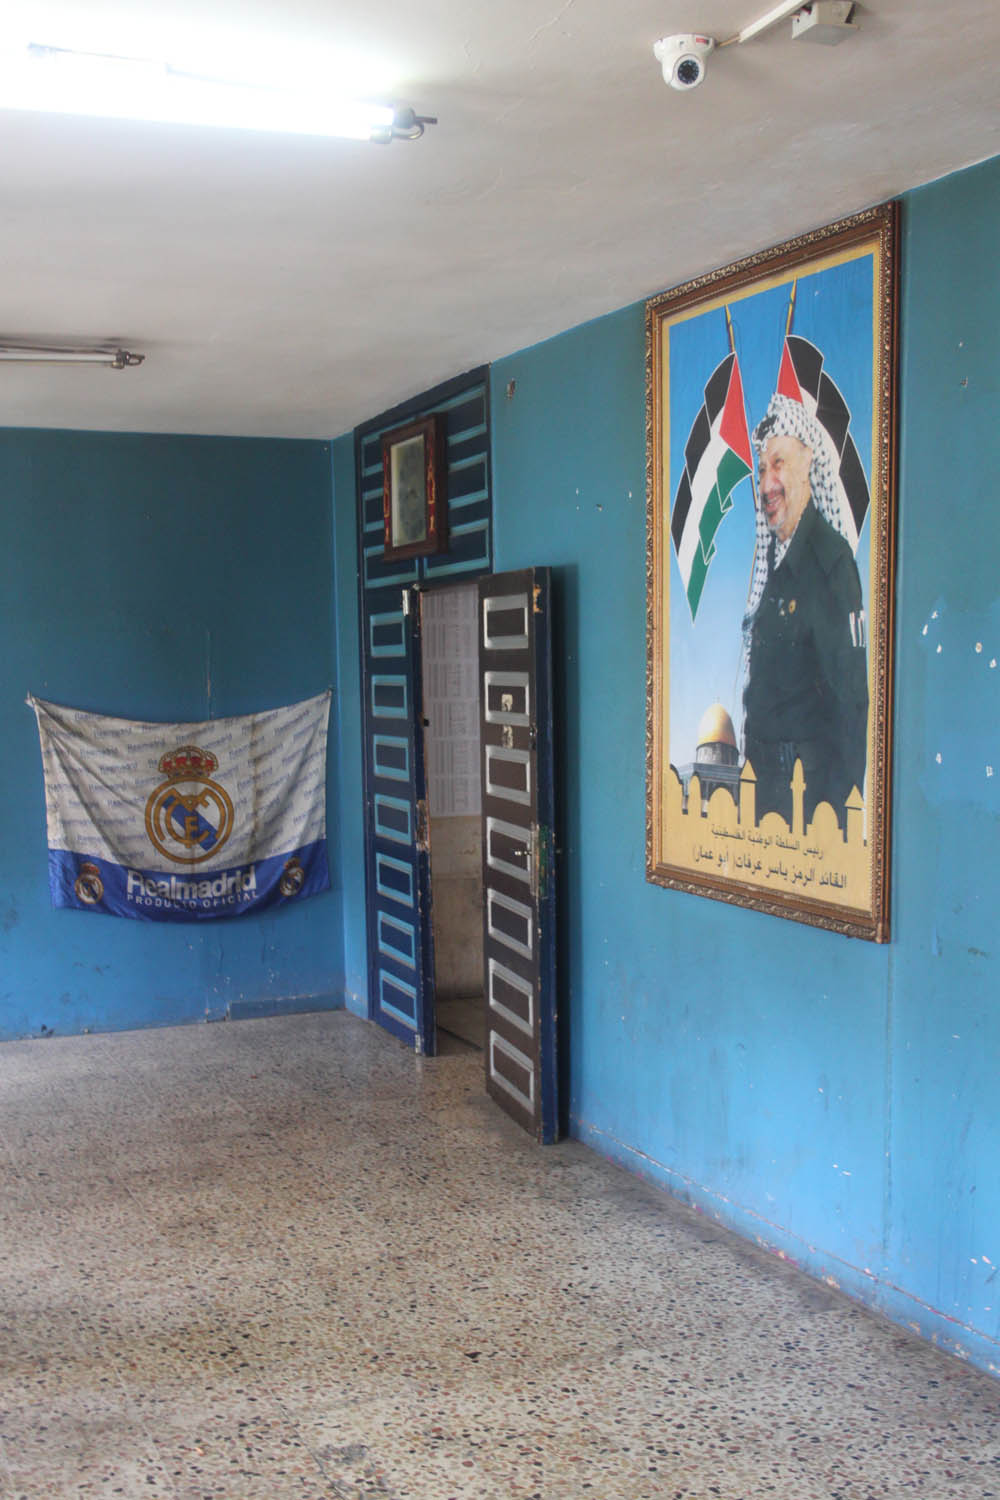 Real Arafat: As much as Palestinians like Yasser Arafat, his fame is considerably threatened by Spanish giants Real Madrid and Barcelona. It is obvious who is supported by people who flock to this social club in Hebron down town.